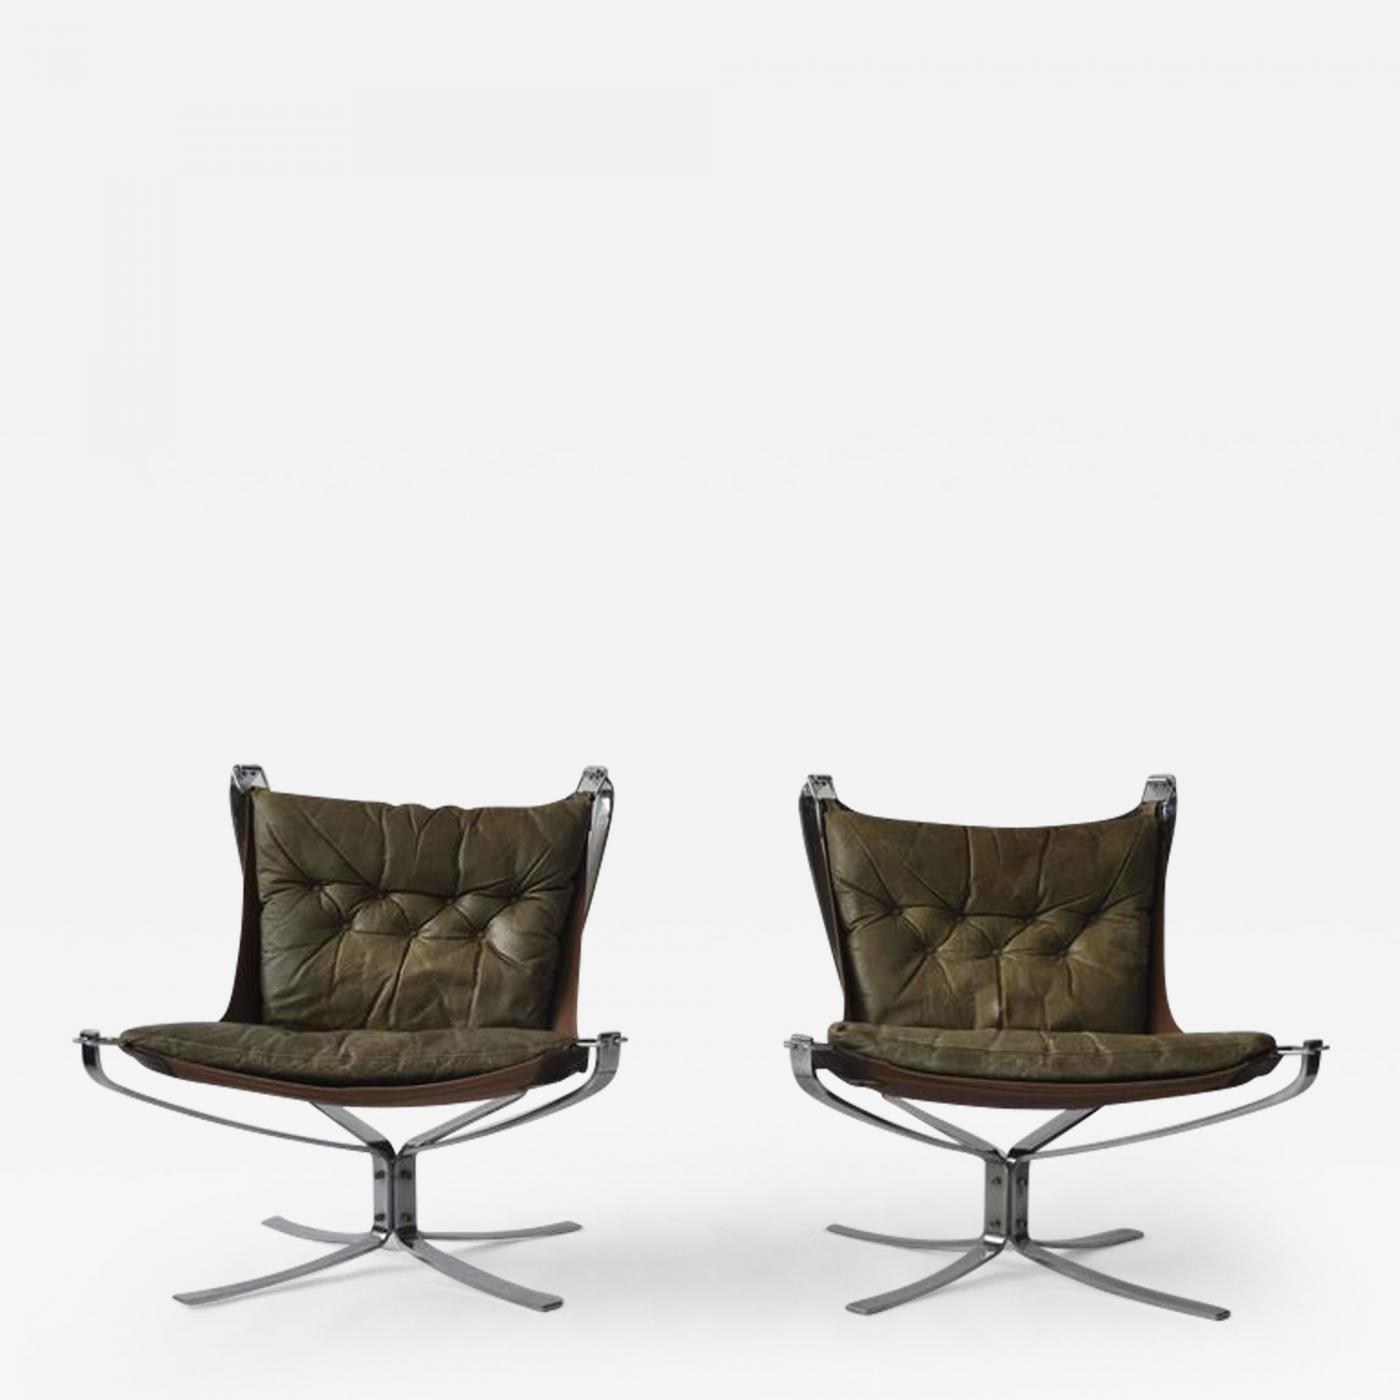 Falcon Chair Sigurd Ressell Pair Of Sigurd Ressell Leather Falcon Chairs